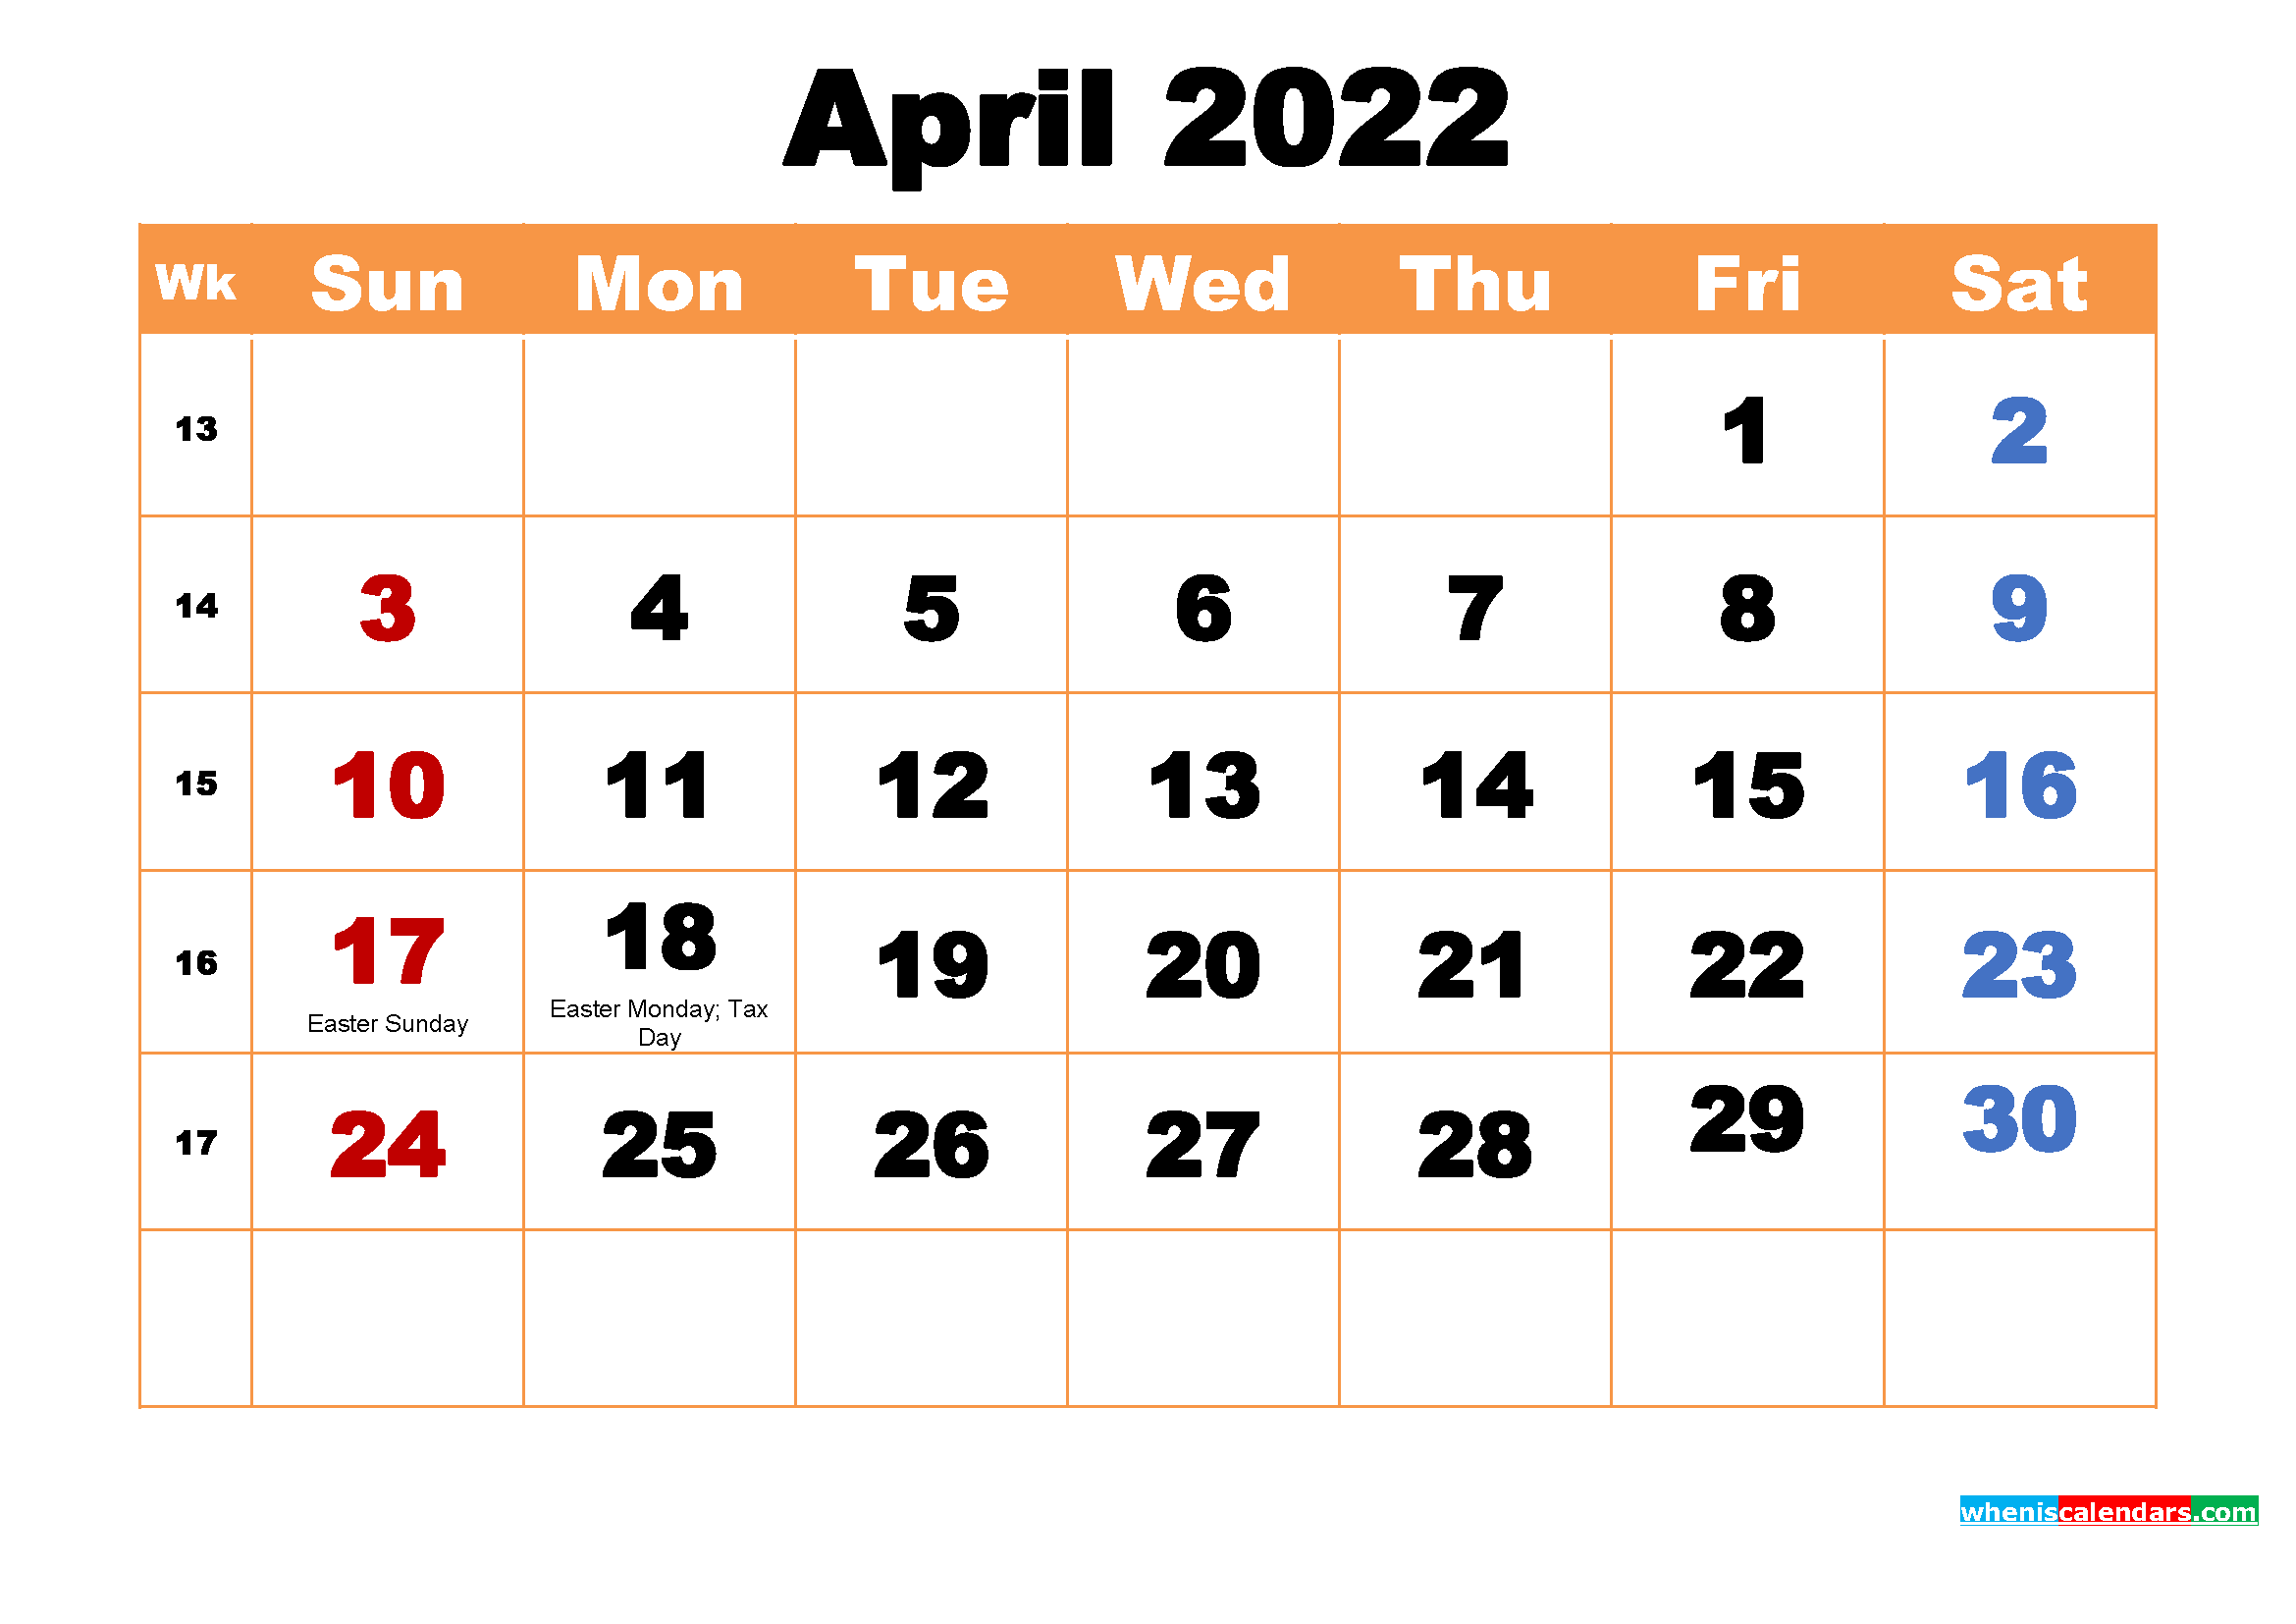 April 2022 Printable Monthly Calendar with Holidays